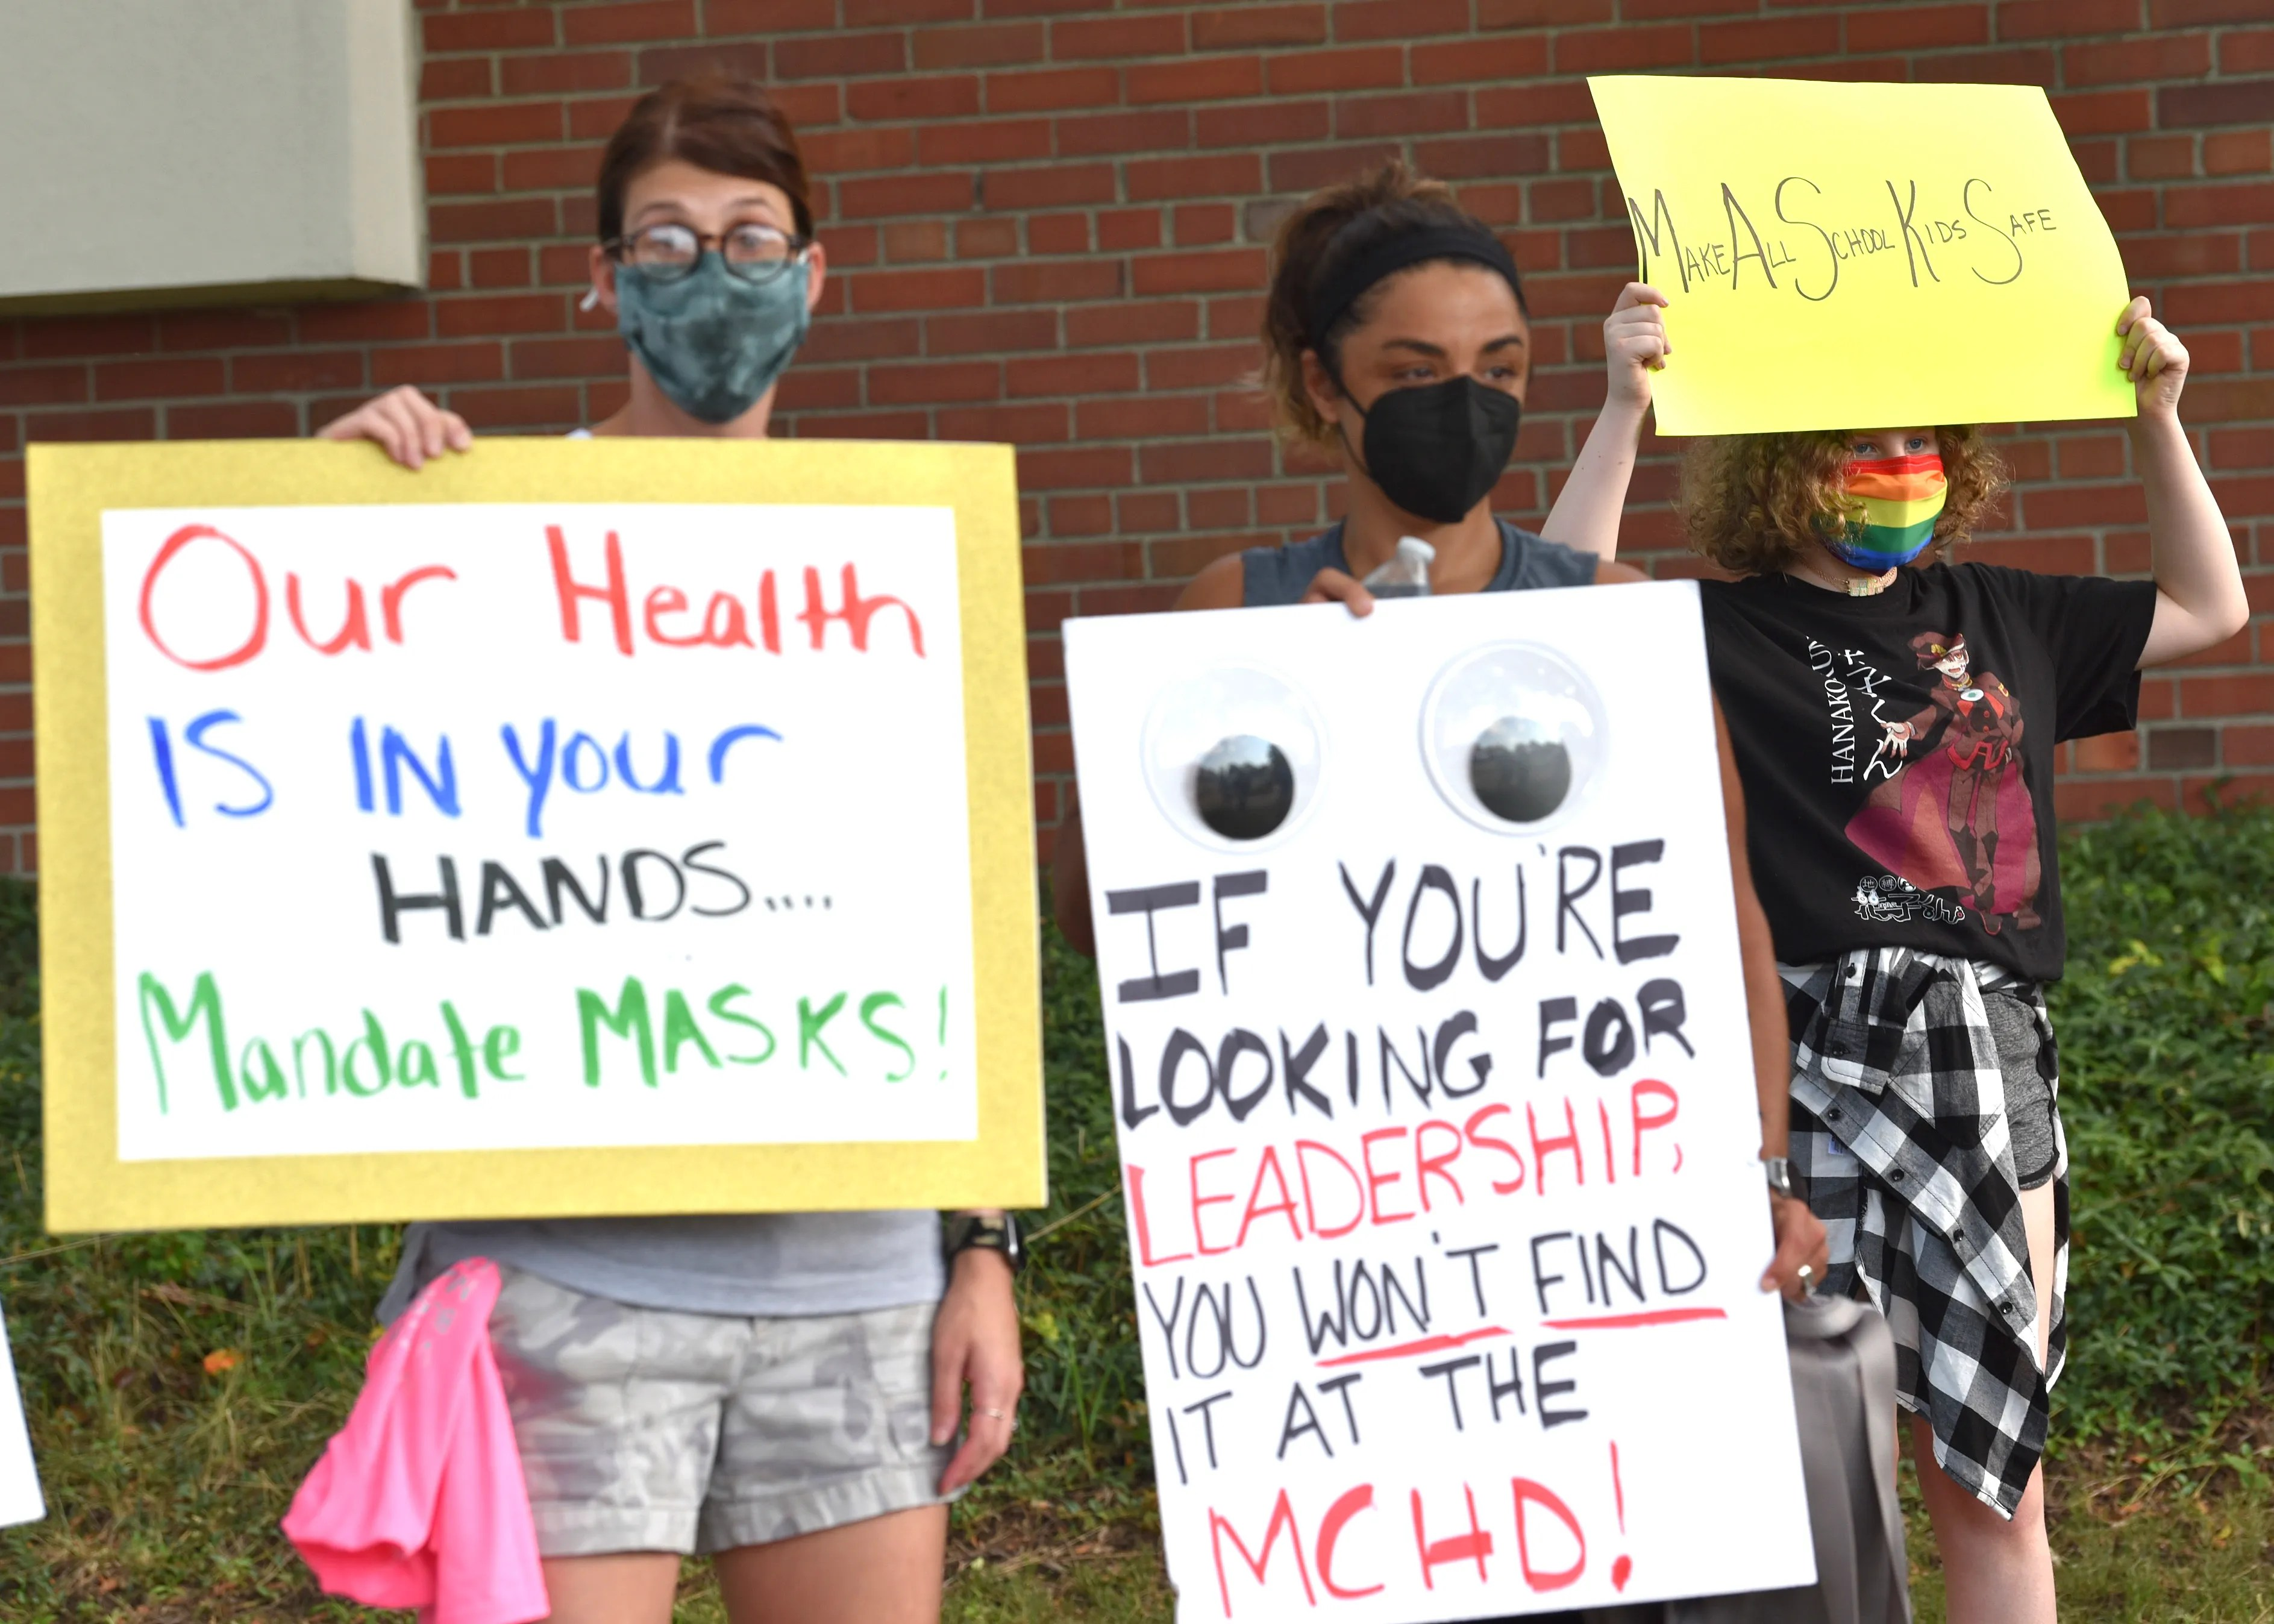 Approximately 25 people attend the Macomb County Parents for Safe In-Person School rally in front of the Macomb County Health Department to ask the health department to mandate mask wearing for all Macomb County K-12 students, just as Oakland County did this week.